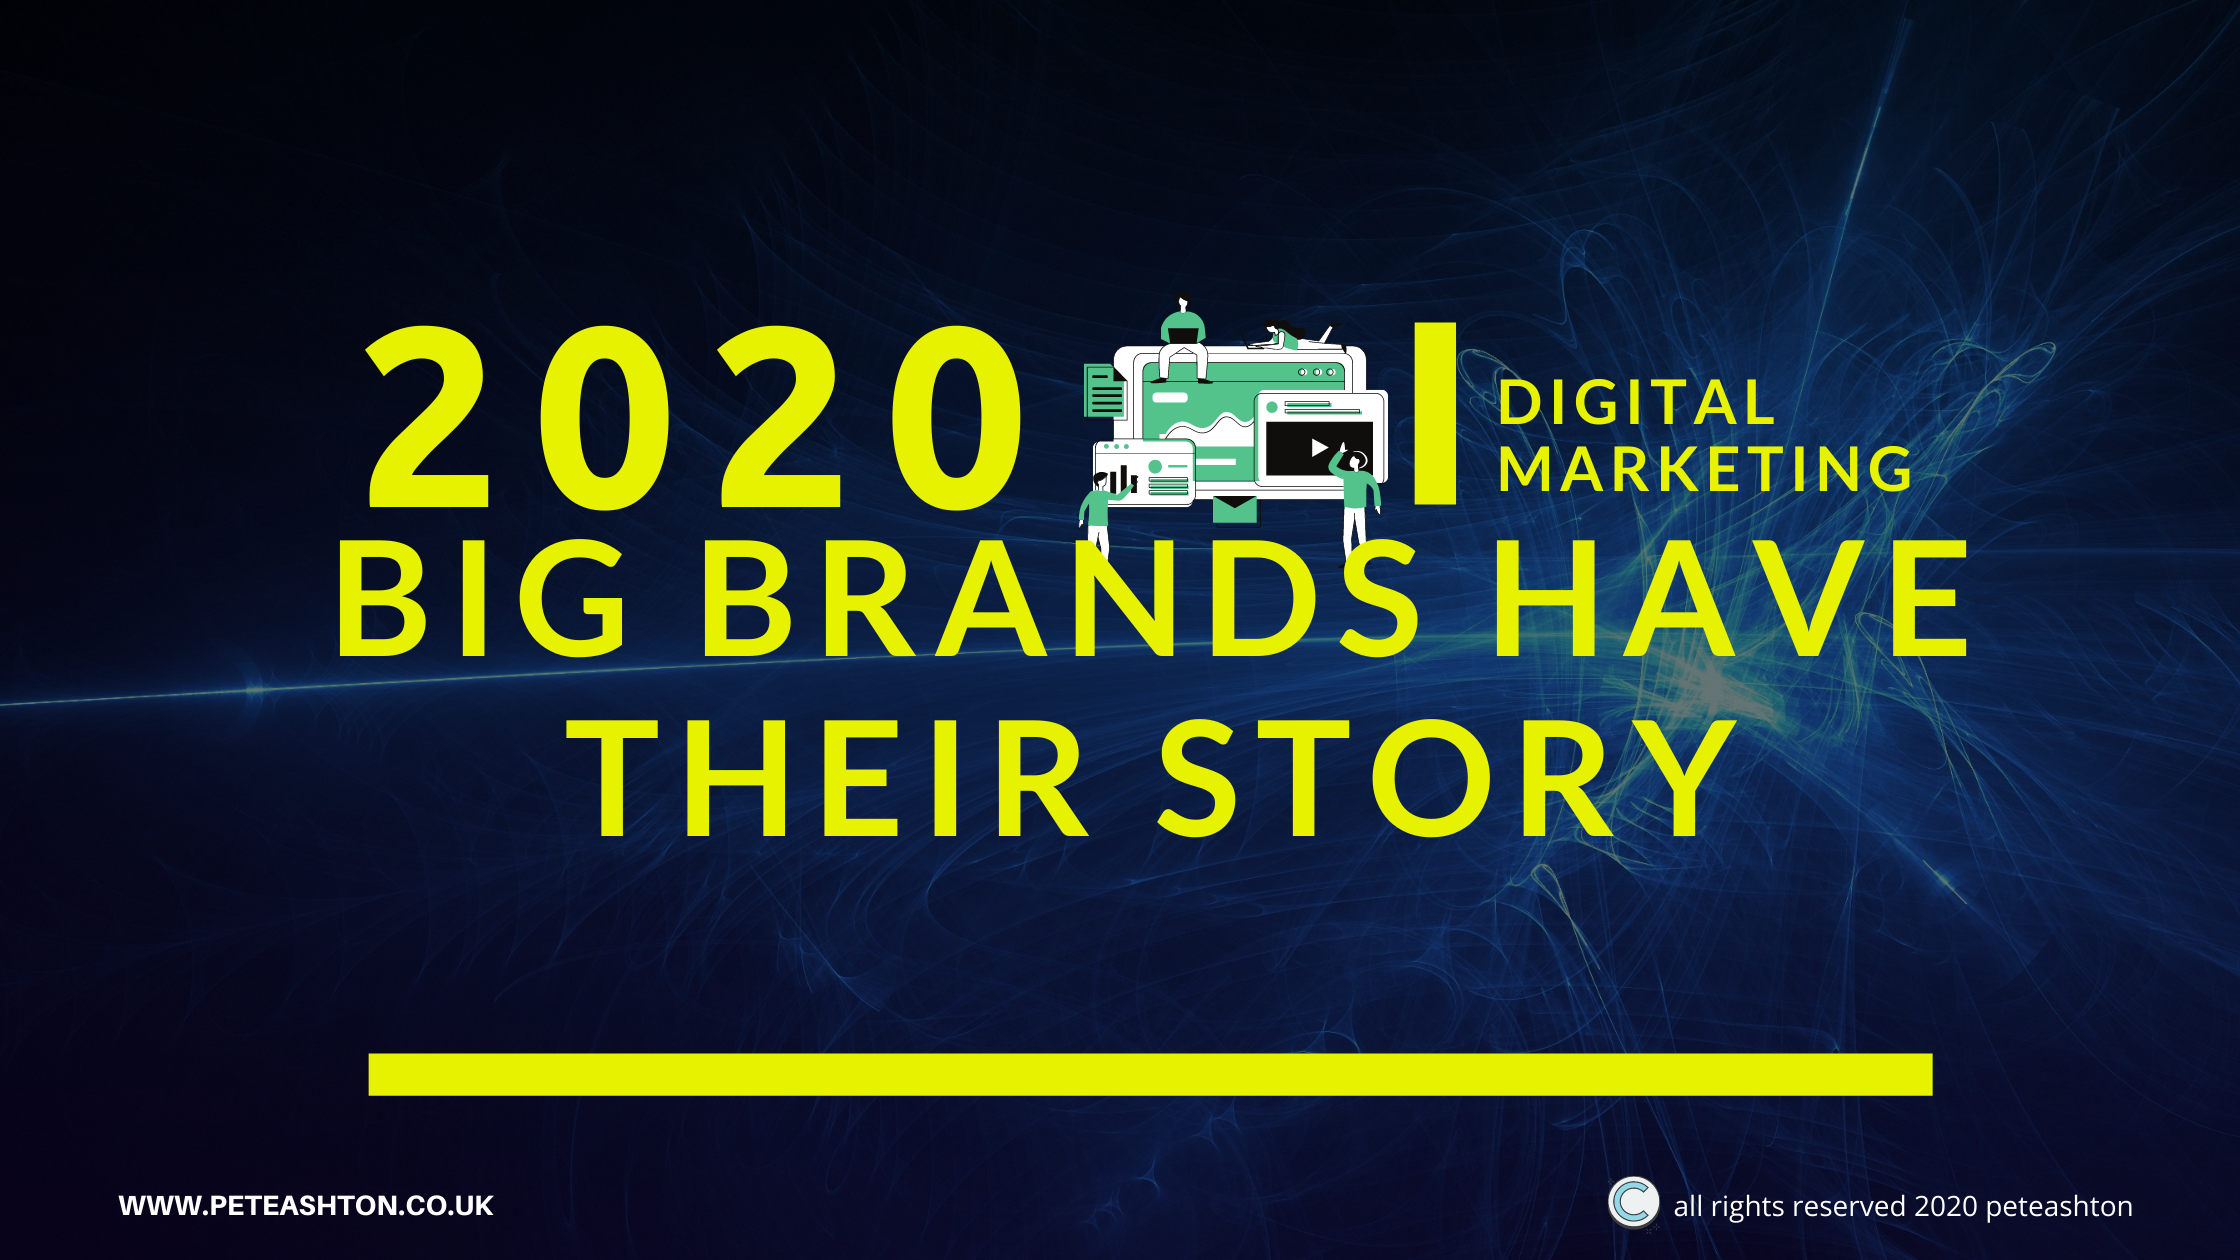 Big brands have their story